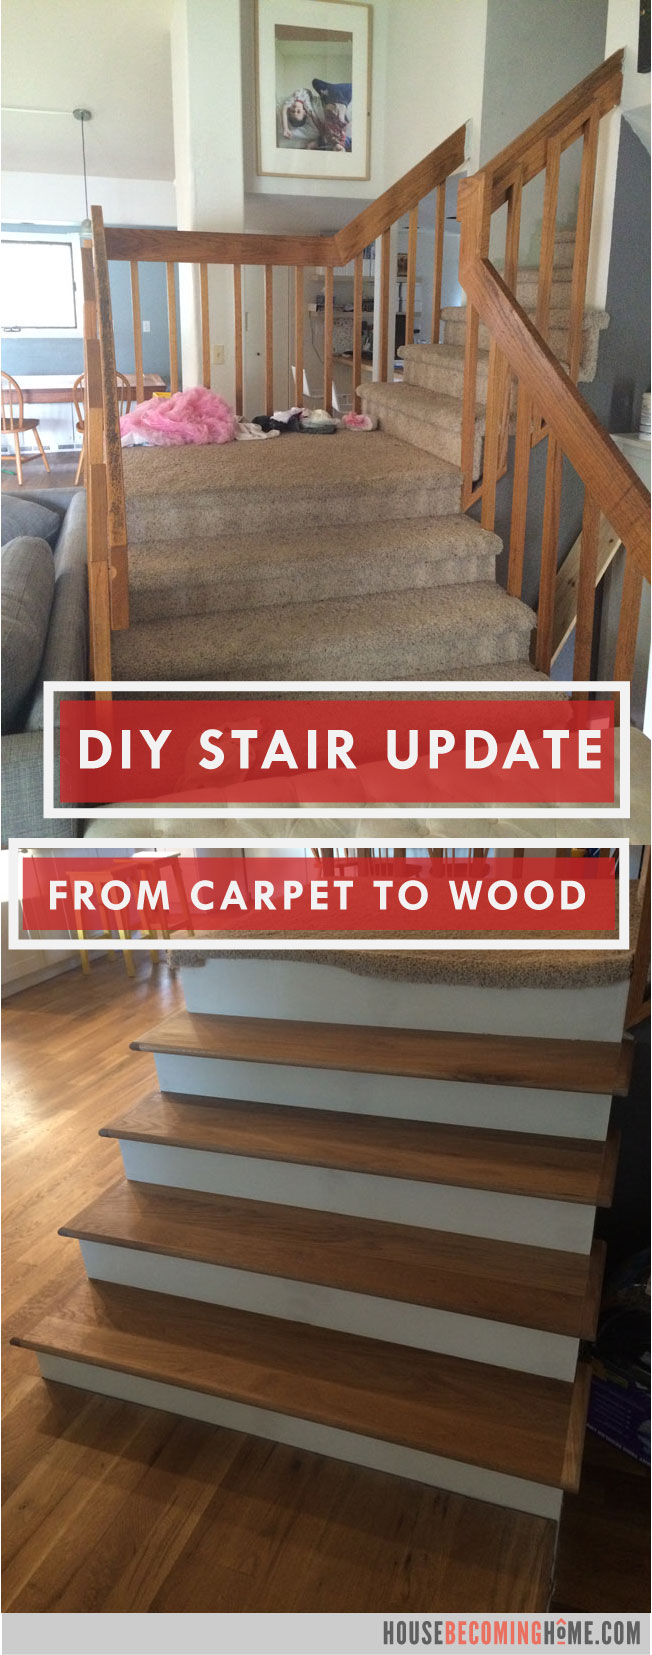 DIY Stair Update from carpet to wood